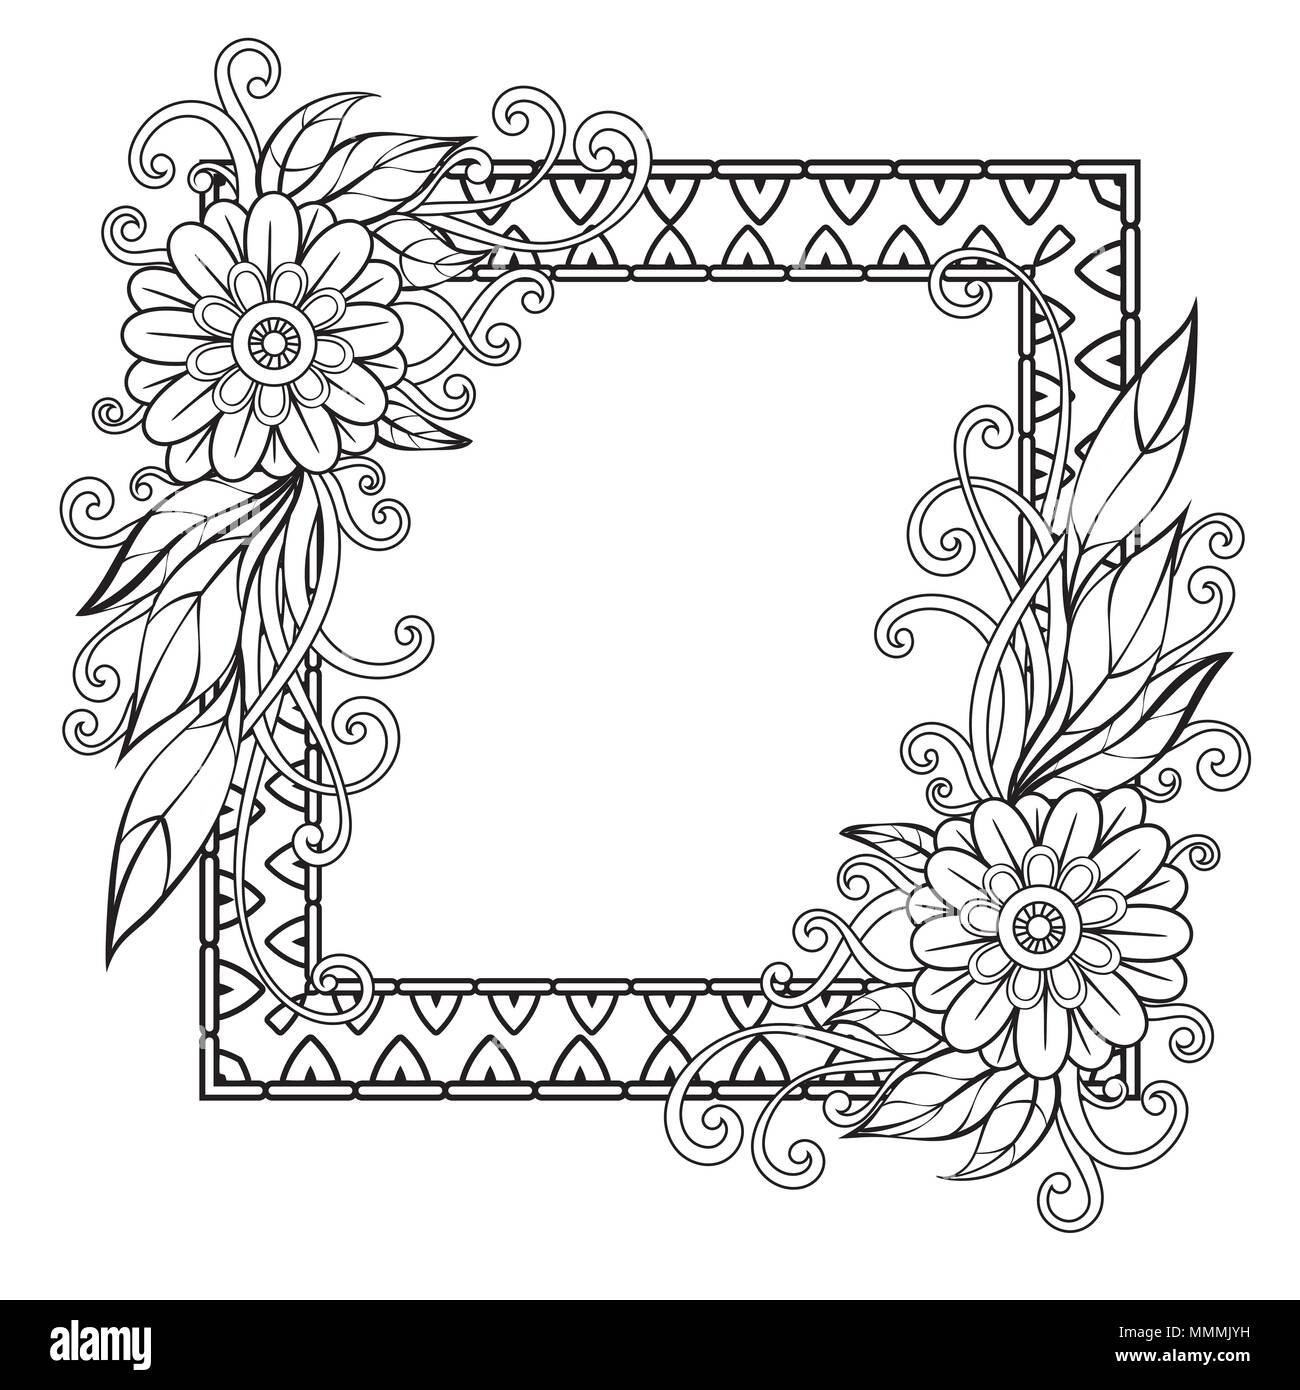 Flowers decorative frame. Isolated on white background. Floral ...